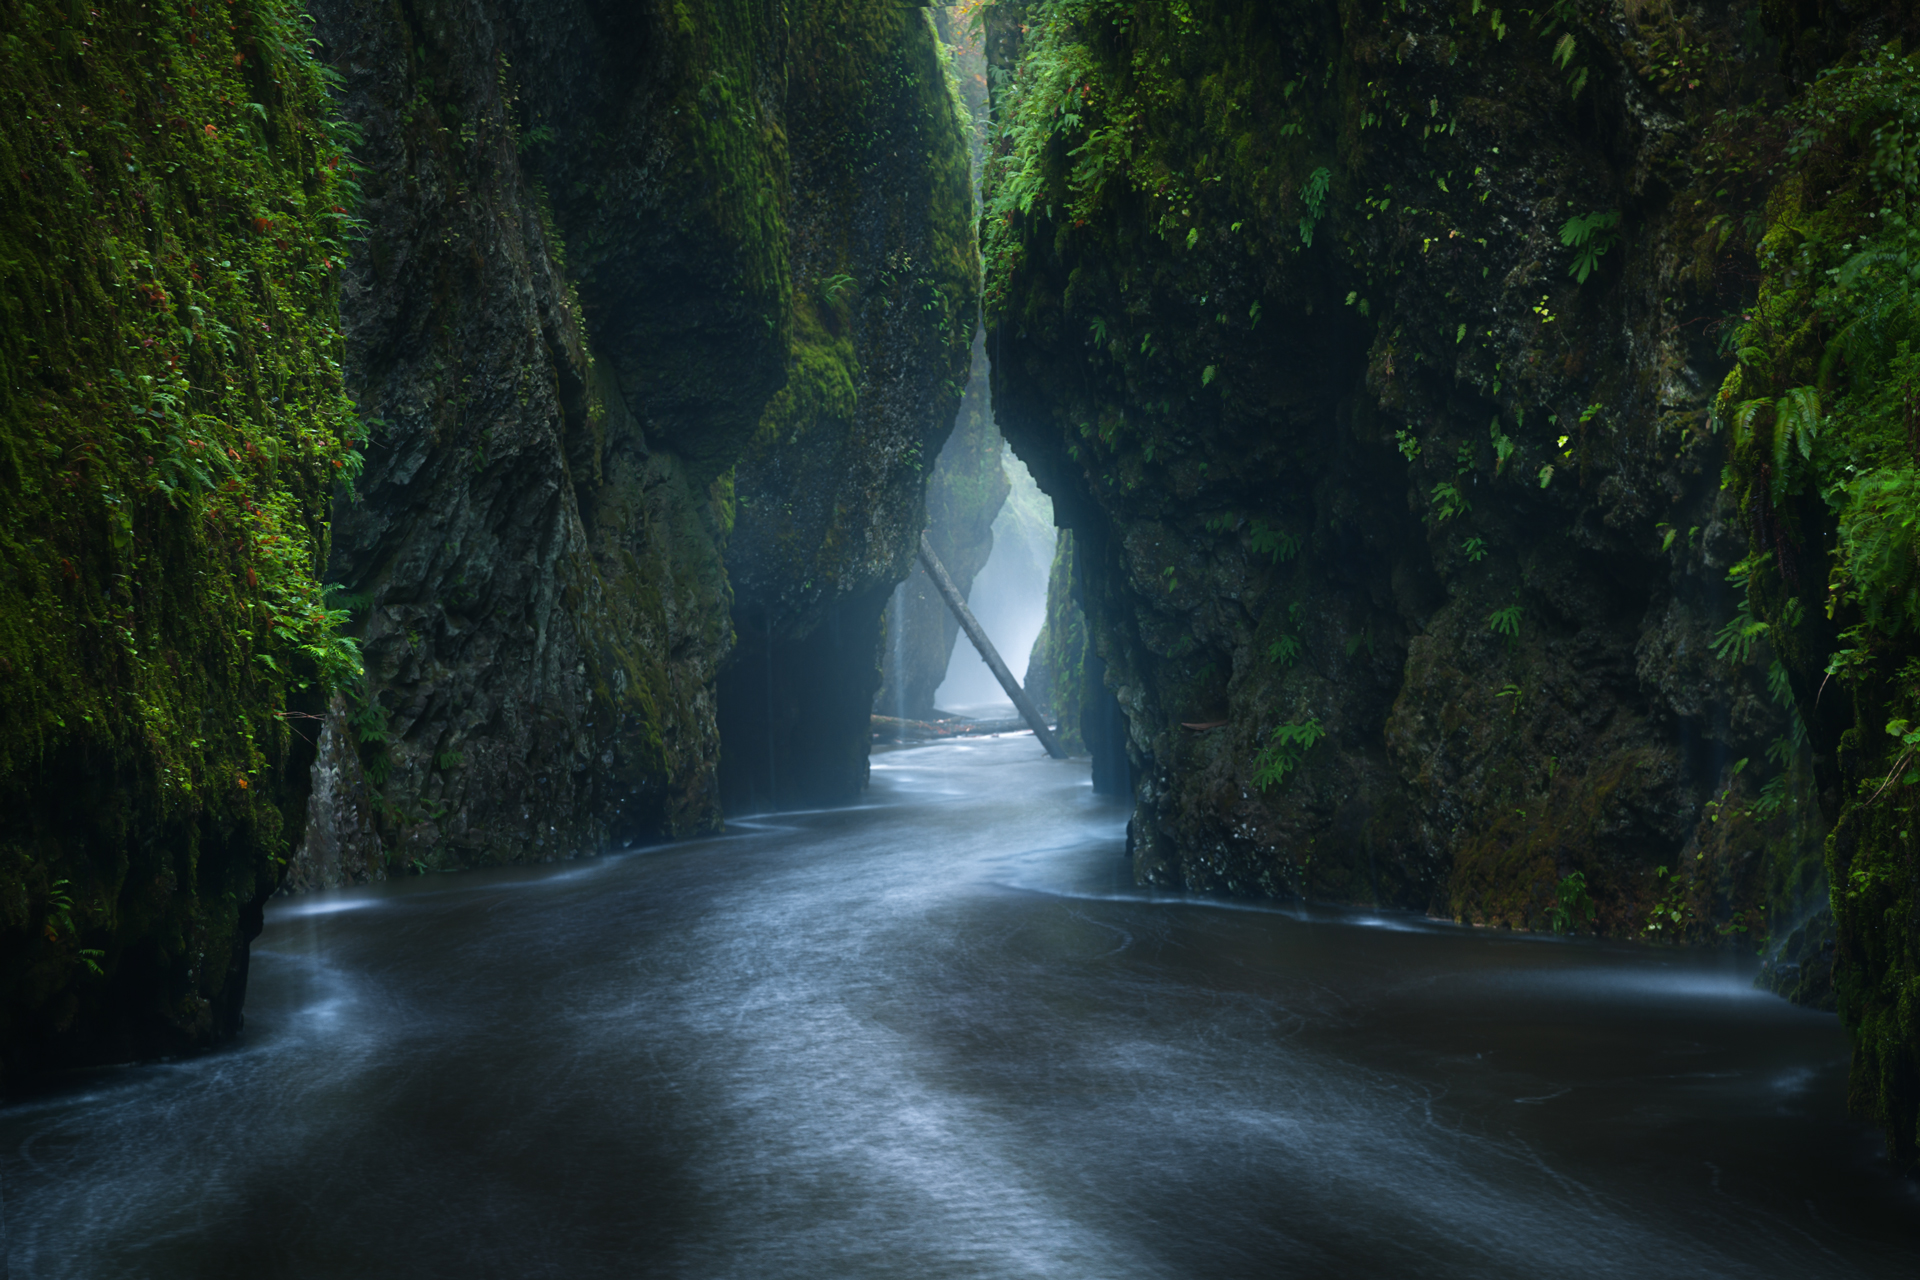 Oneonta-Gorge-located-in-the-Columbia-River-Gorge-region-of-Oregon-after-heavy-rainfall-began-to-hit-wallpaper-wpc5807844